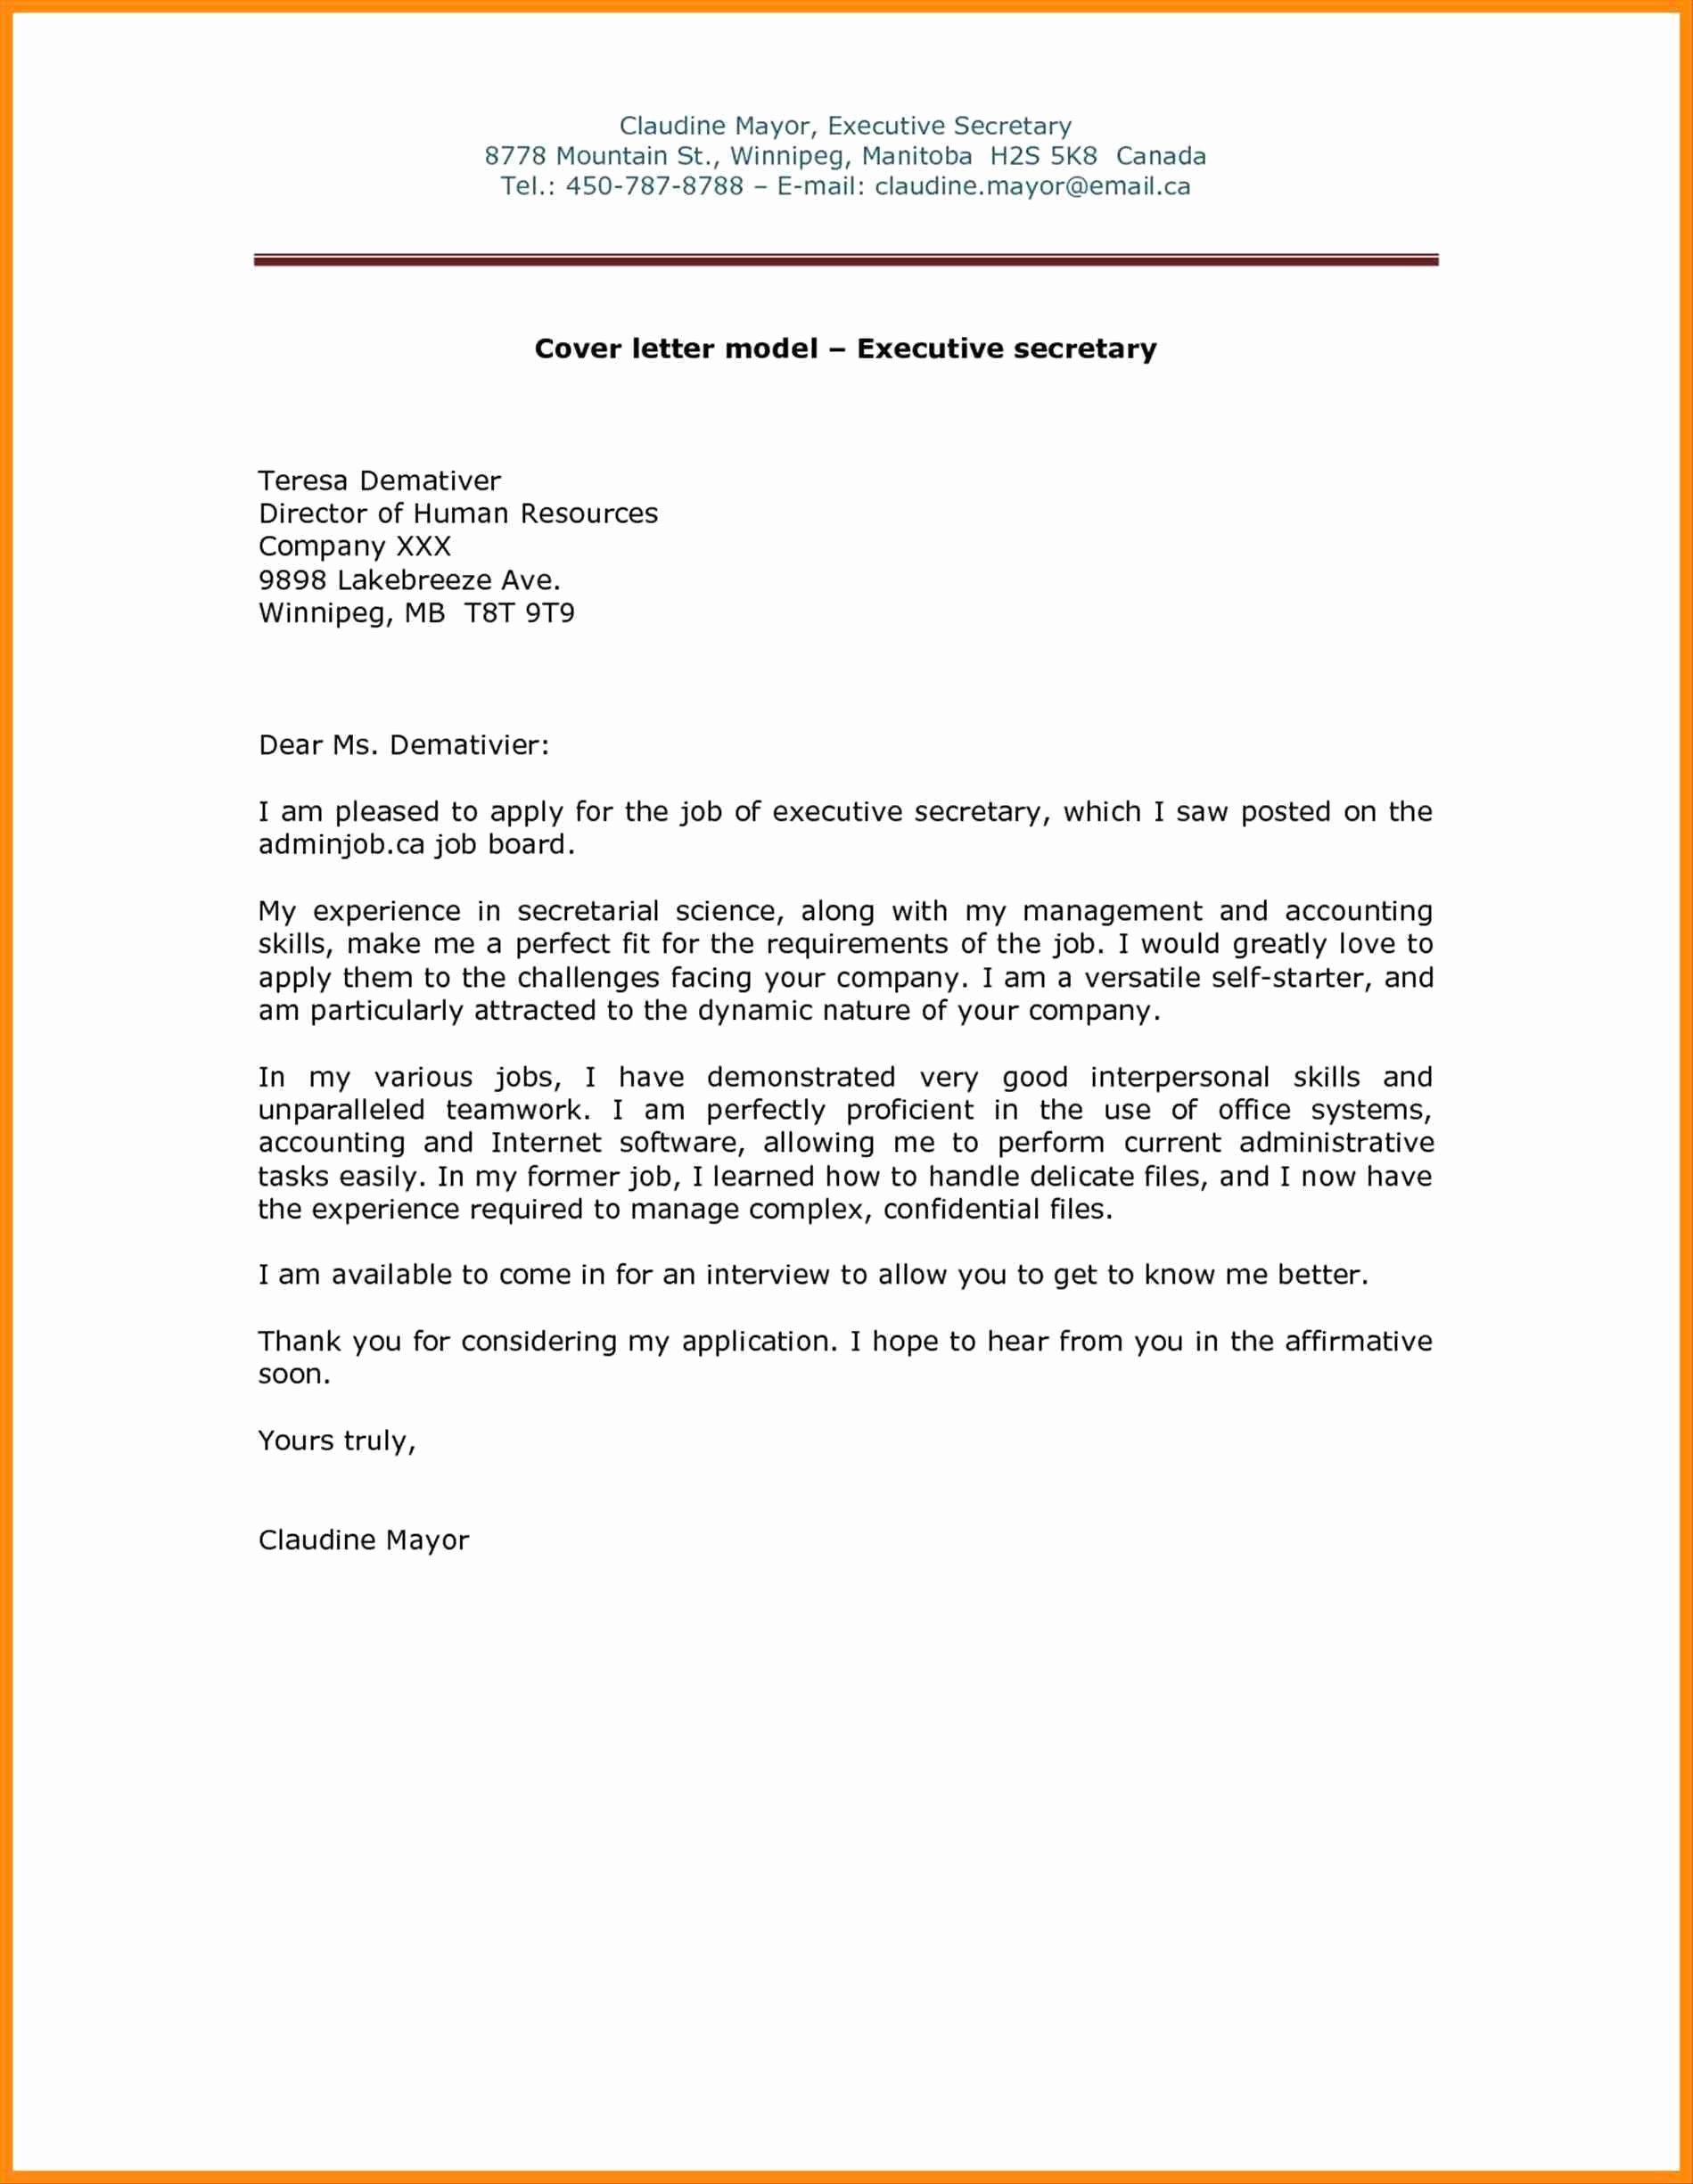 Email Job Application Letters Writing Email Cover Letter